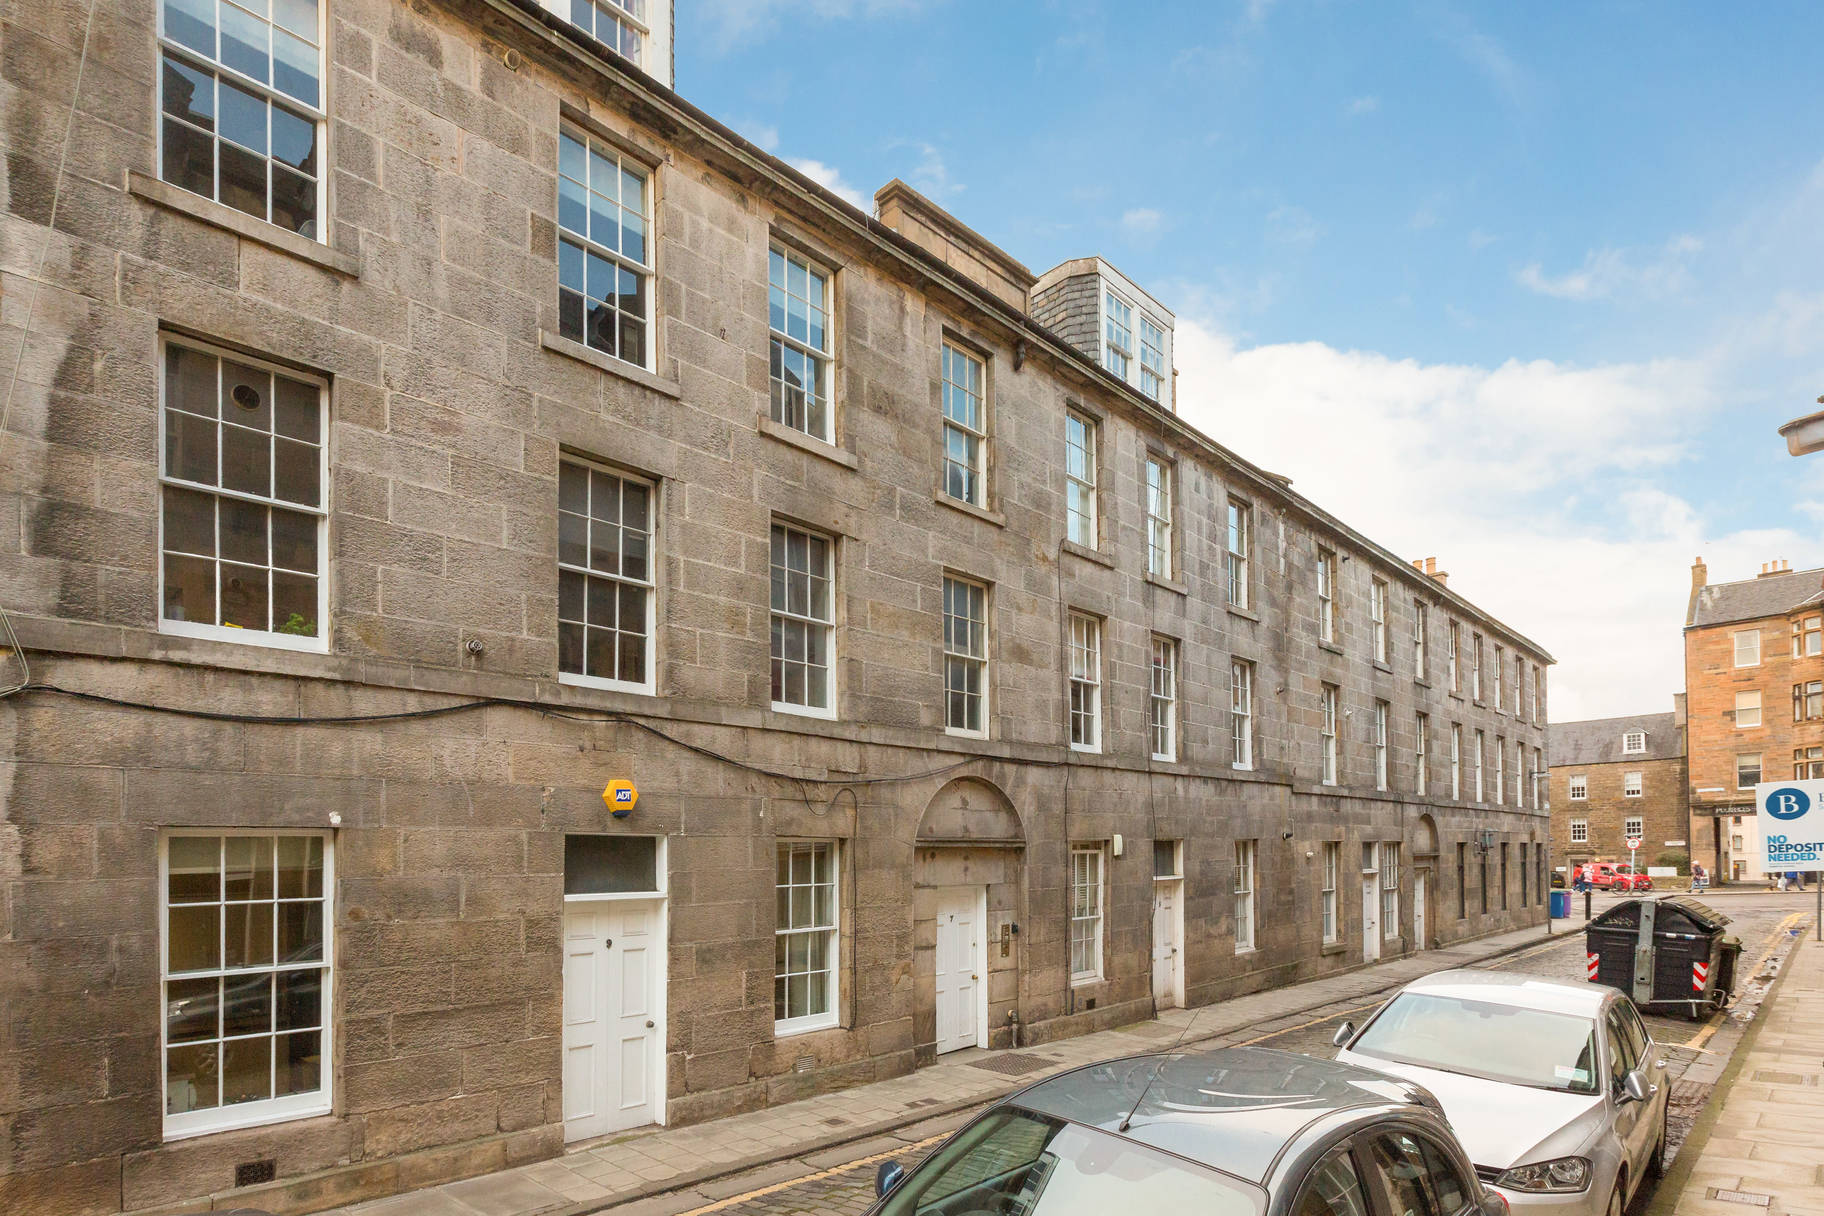 7/8 Dean Street, Stockbridge, Edinburgh, EH4 1LN